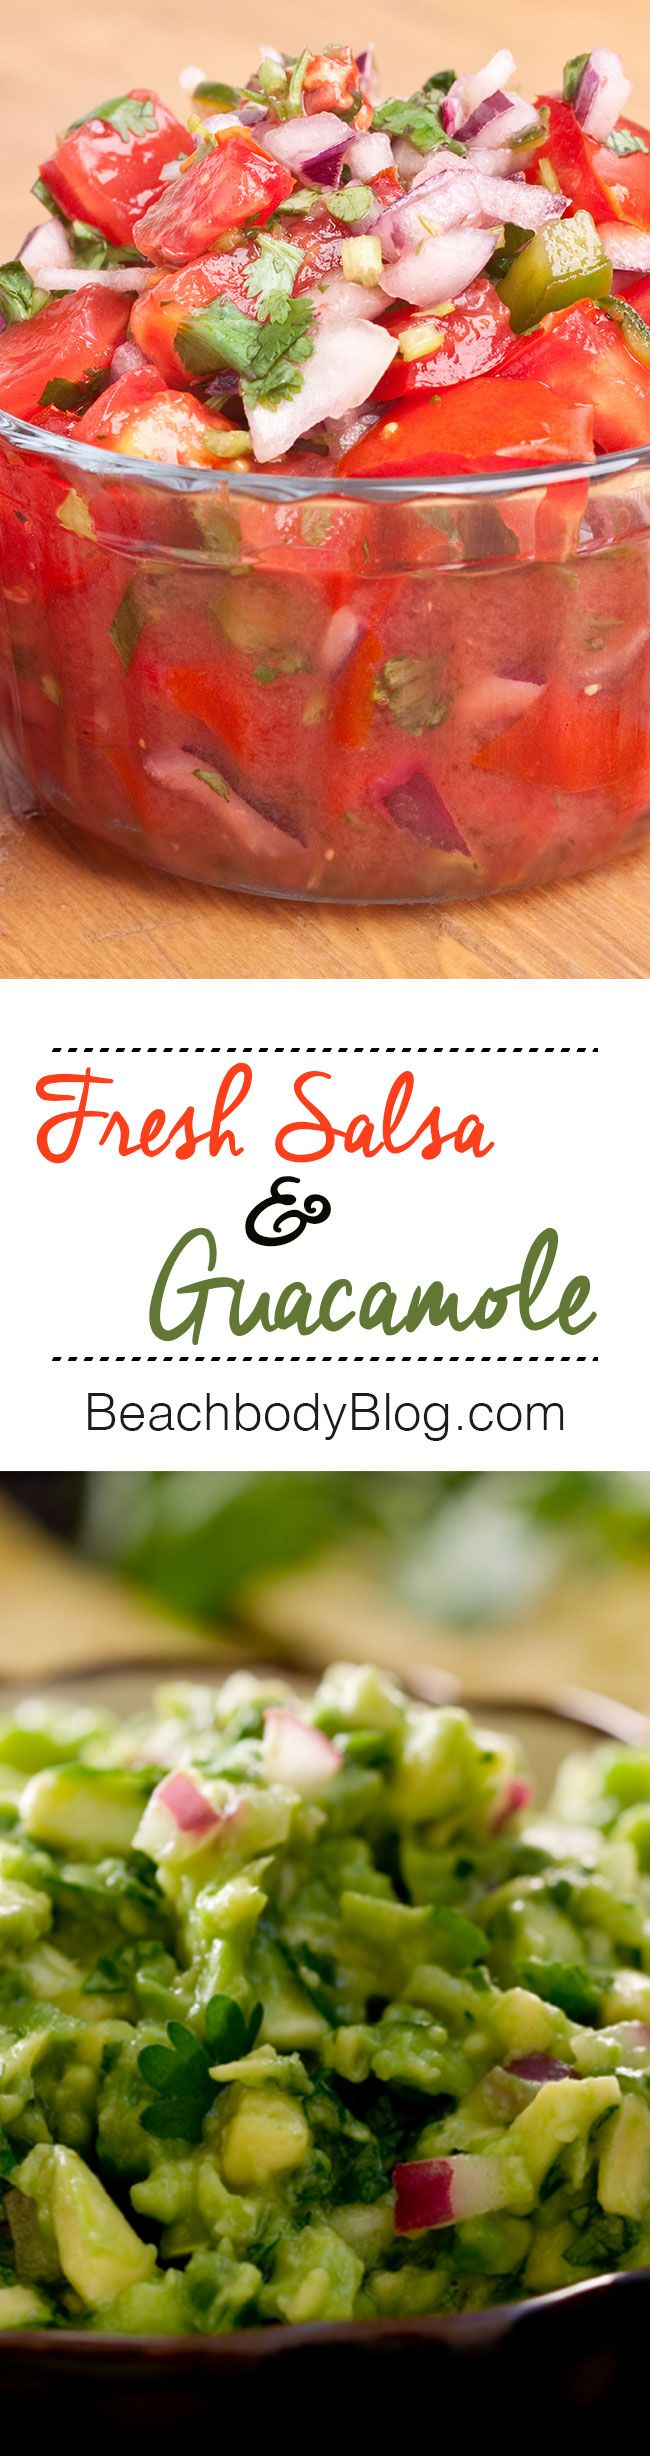 No party is complete without this dynamic dip duo of fresh salsa and guacamole! Pair them with homemade tortilla chips to wow your guests even more. // healthy recipes // snacks // vegetarian // eat clean // side dishes // dips // Beachbody // BeachbodyBlog.com